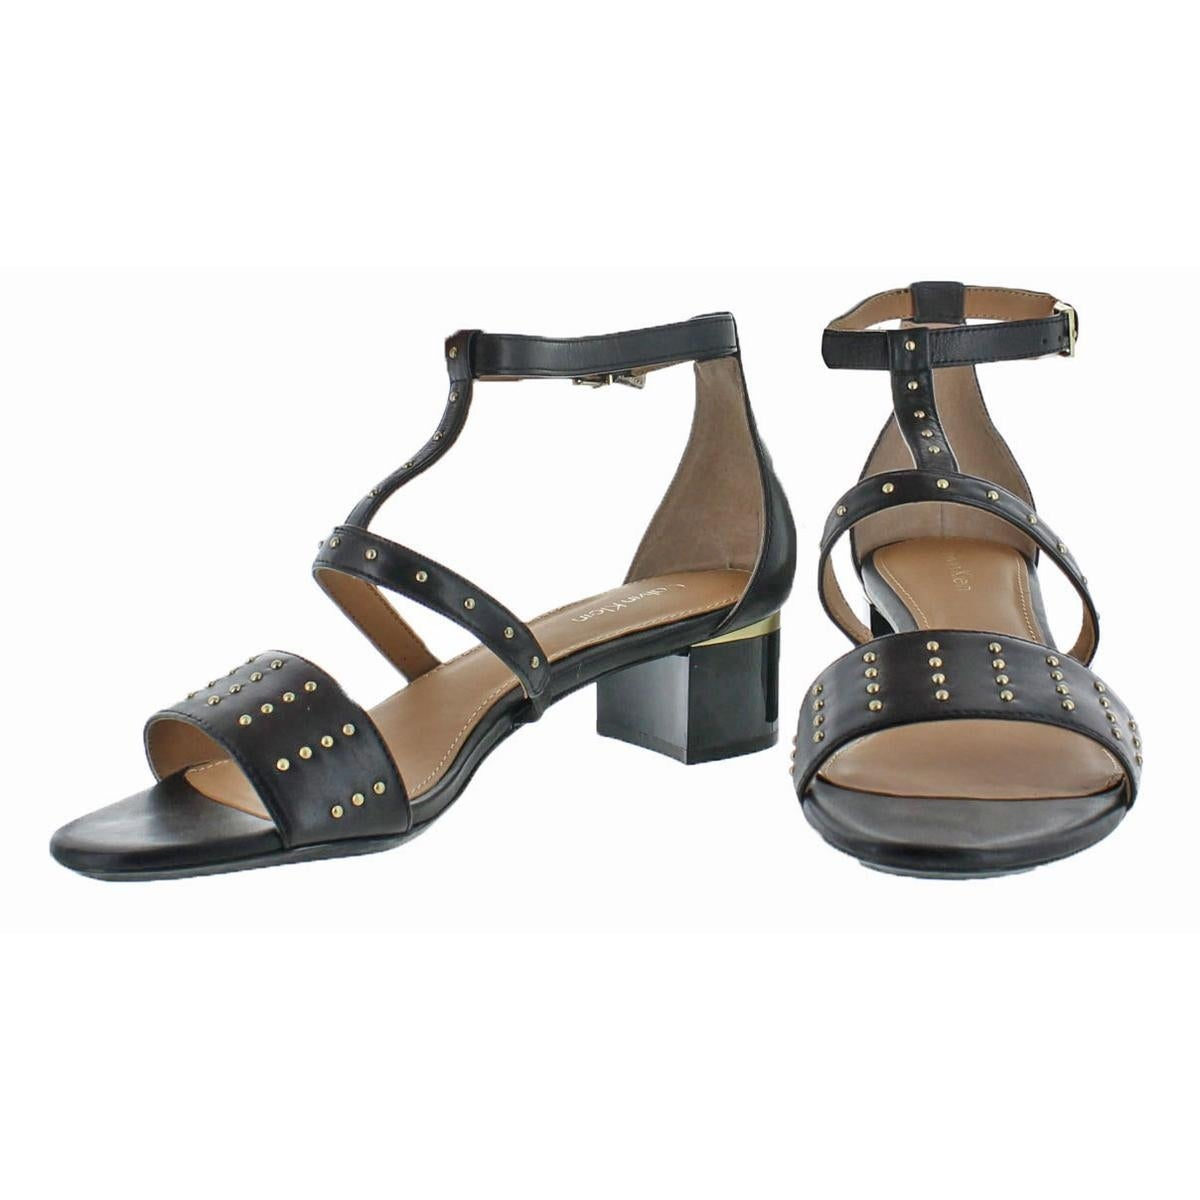 637f9691cb1 Shop Calvin Klein Womens Divina Dress Sandals Open Toe Block Heel - Free  Shipping On Orders Over  45 - Overstock - 21185526